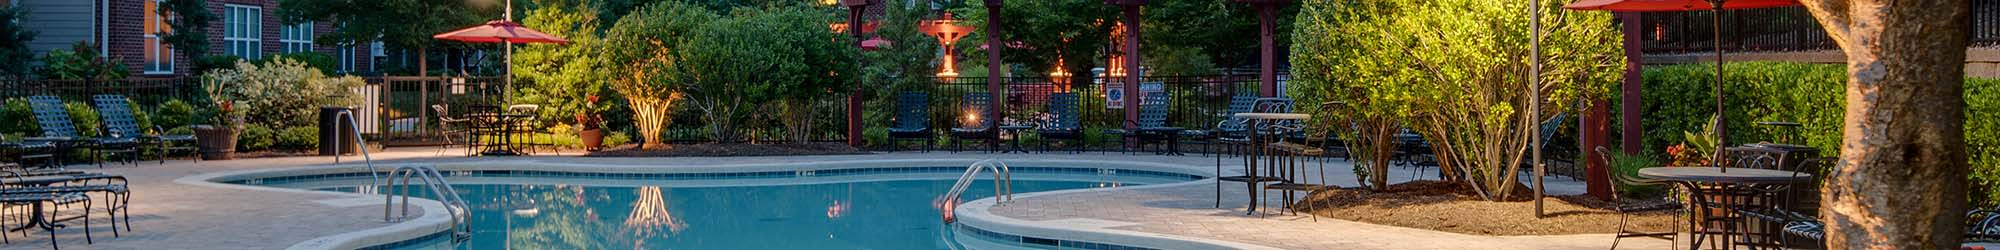 Pet friendly apartments in Raleigh, NC